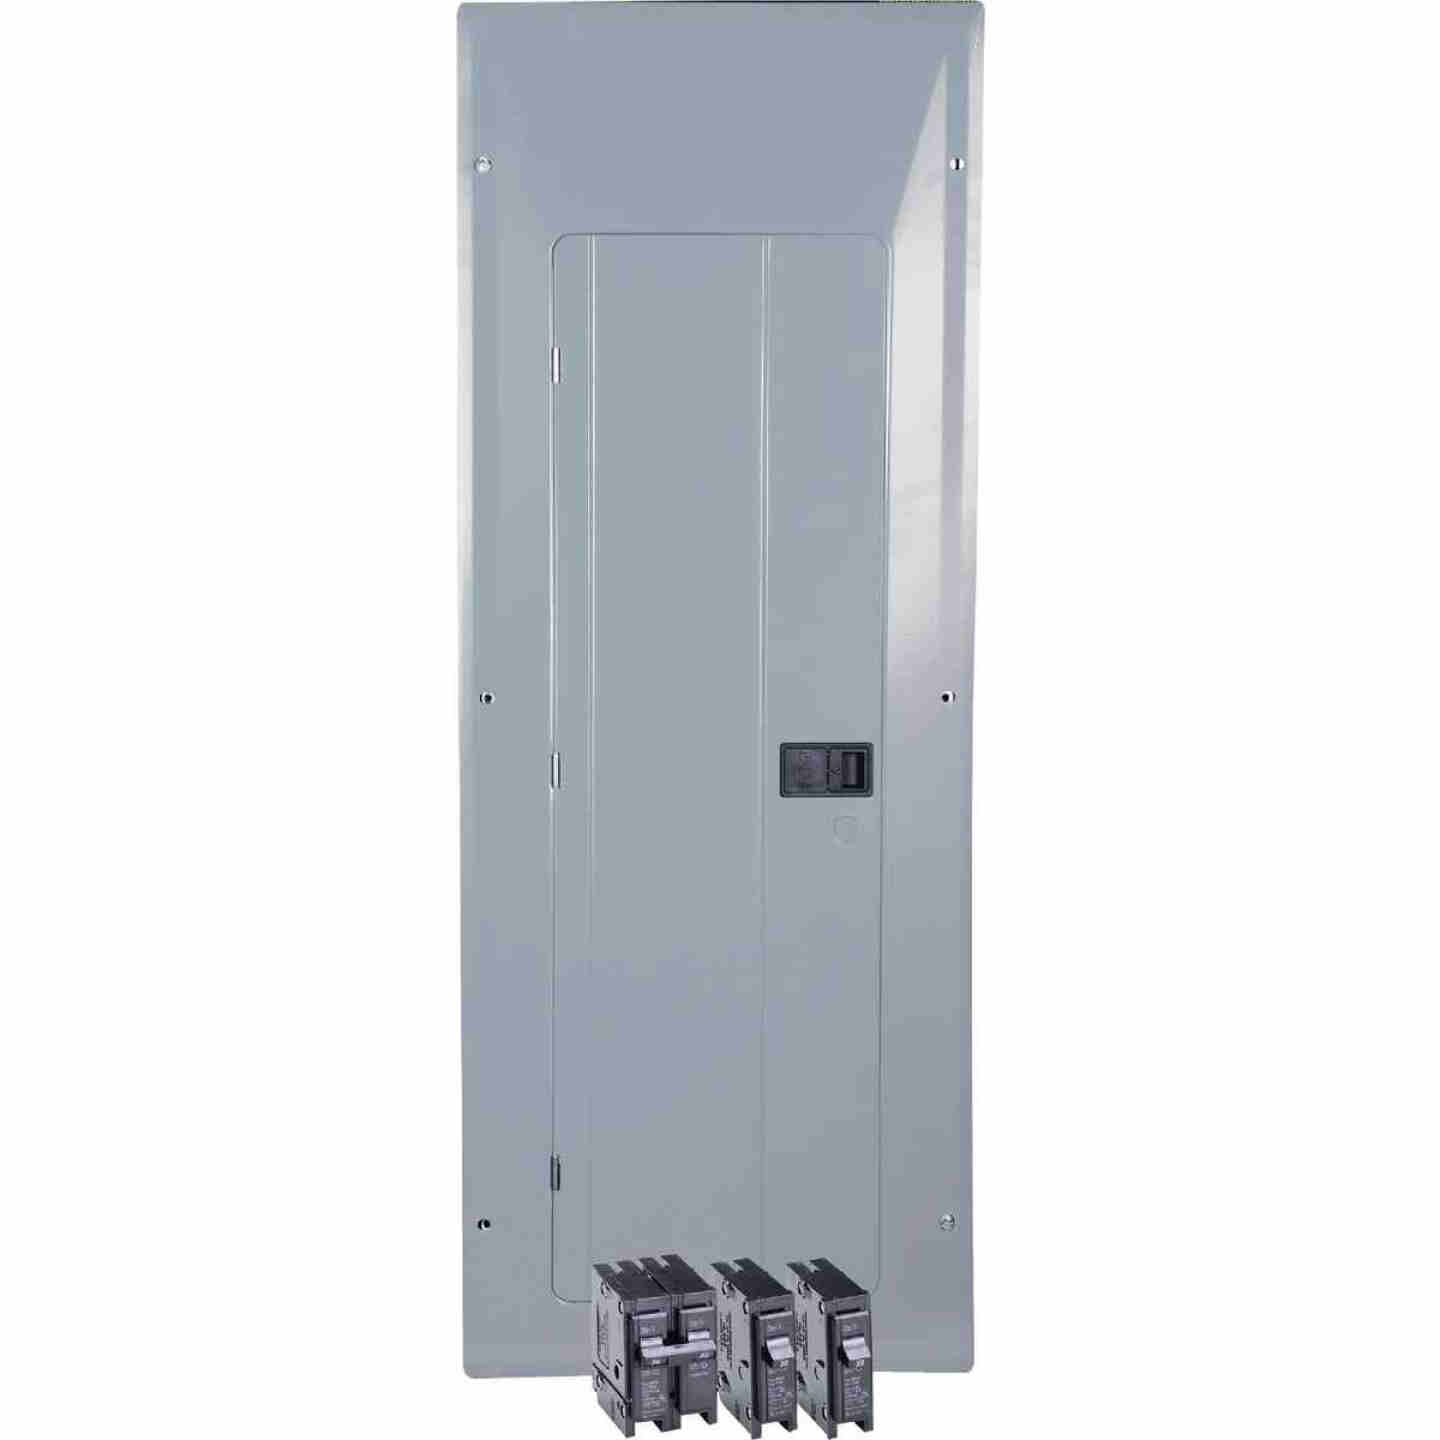 Eaton BR 200A 40-Space 80-Circuit Indoor Plug-On Neutral Load Center Image 1